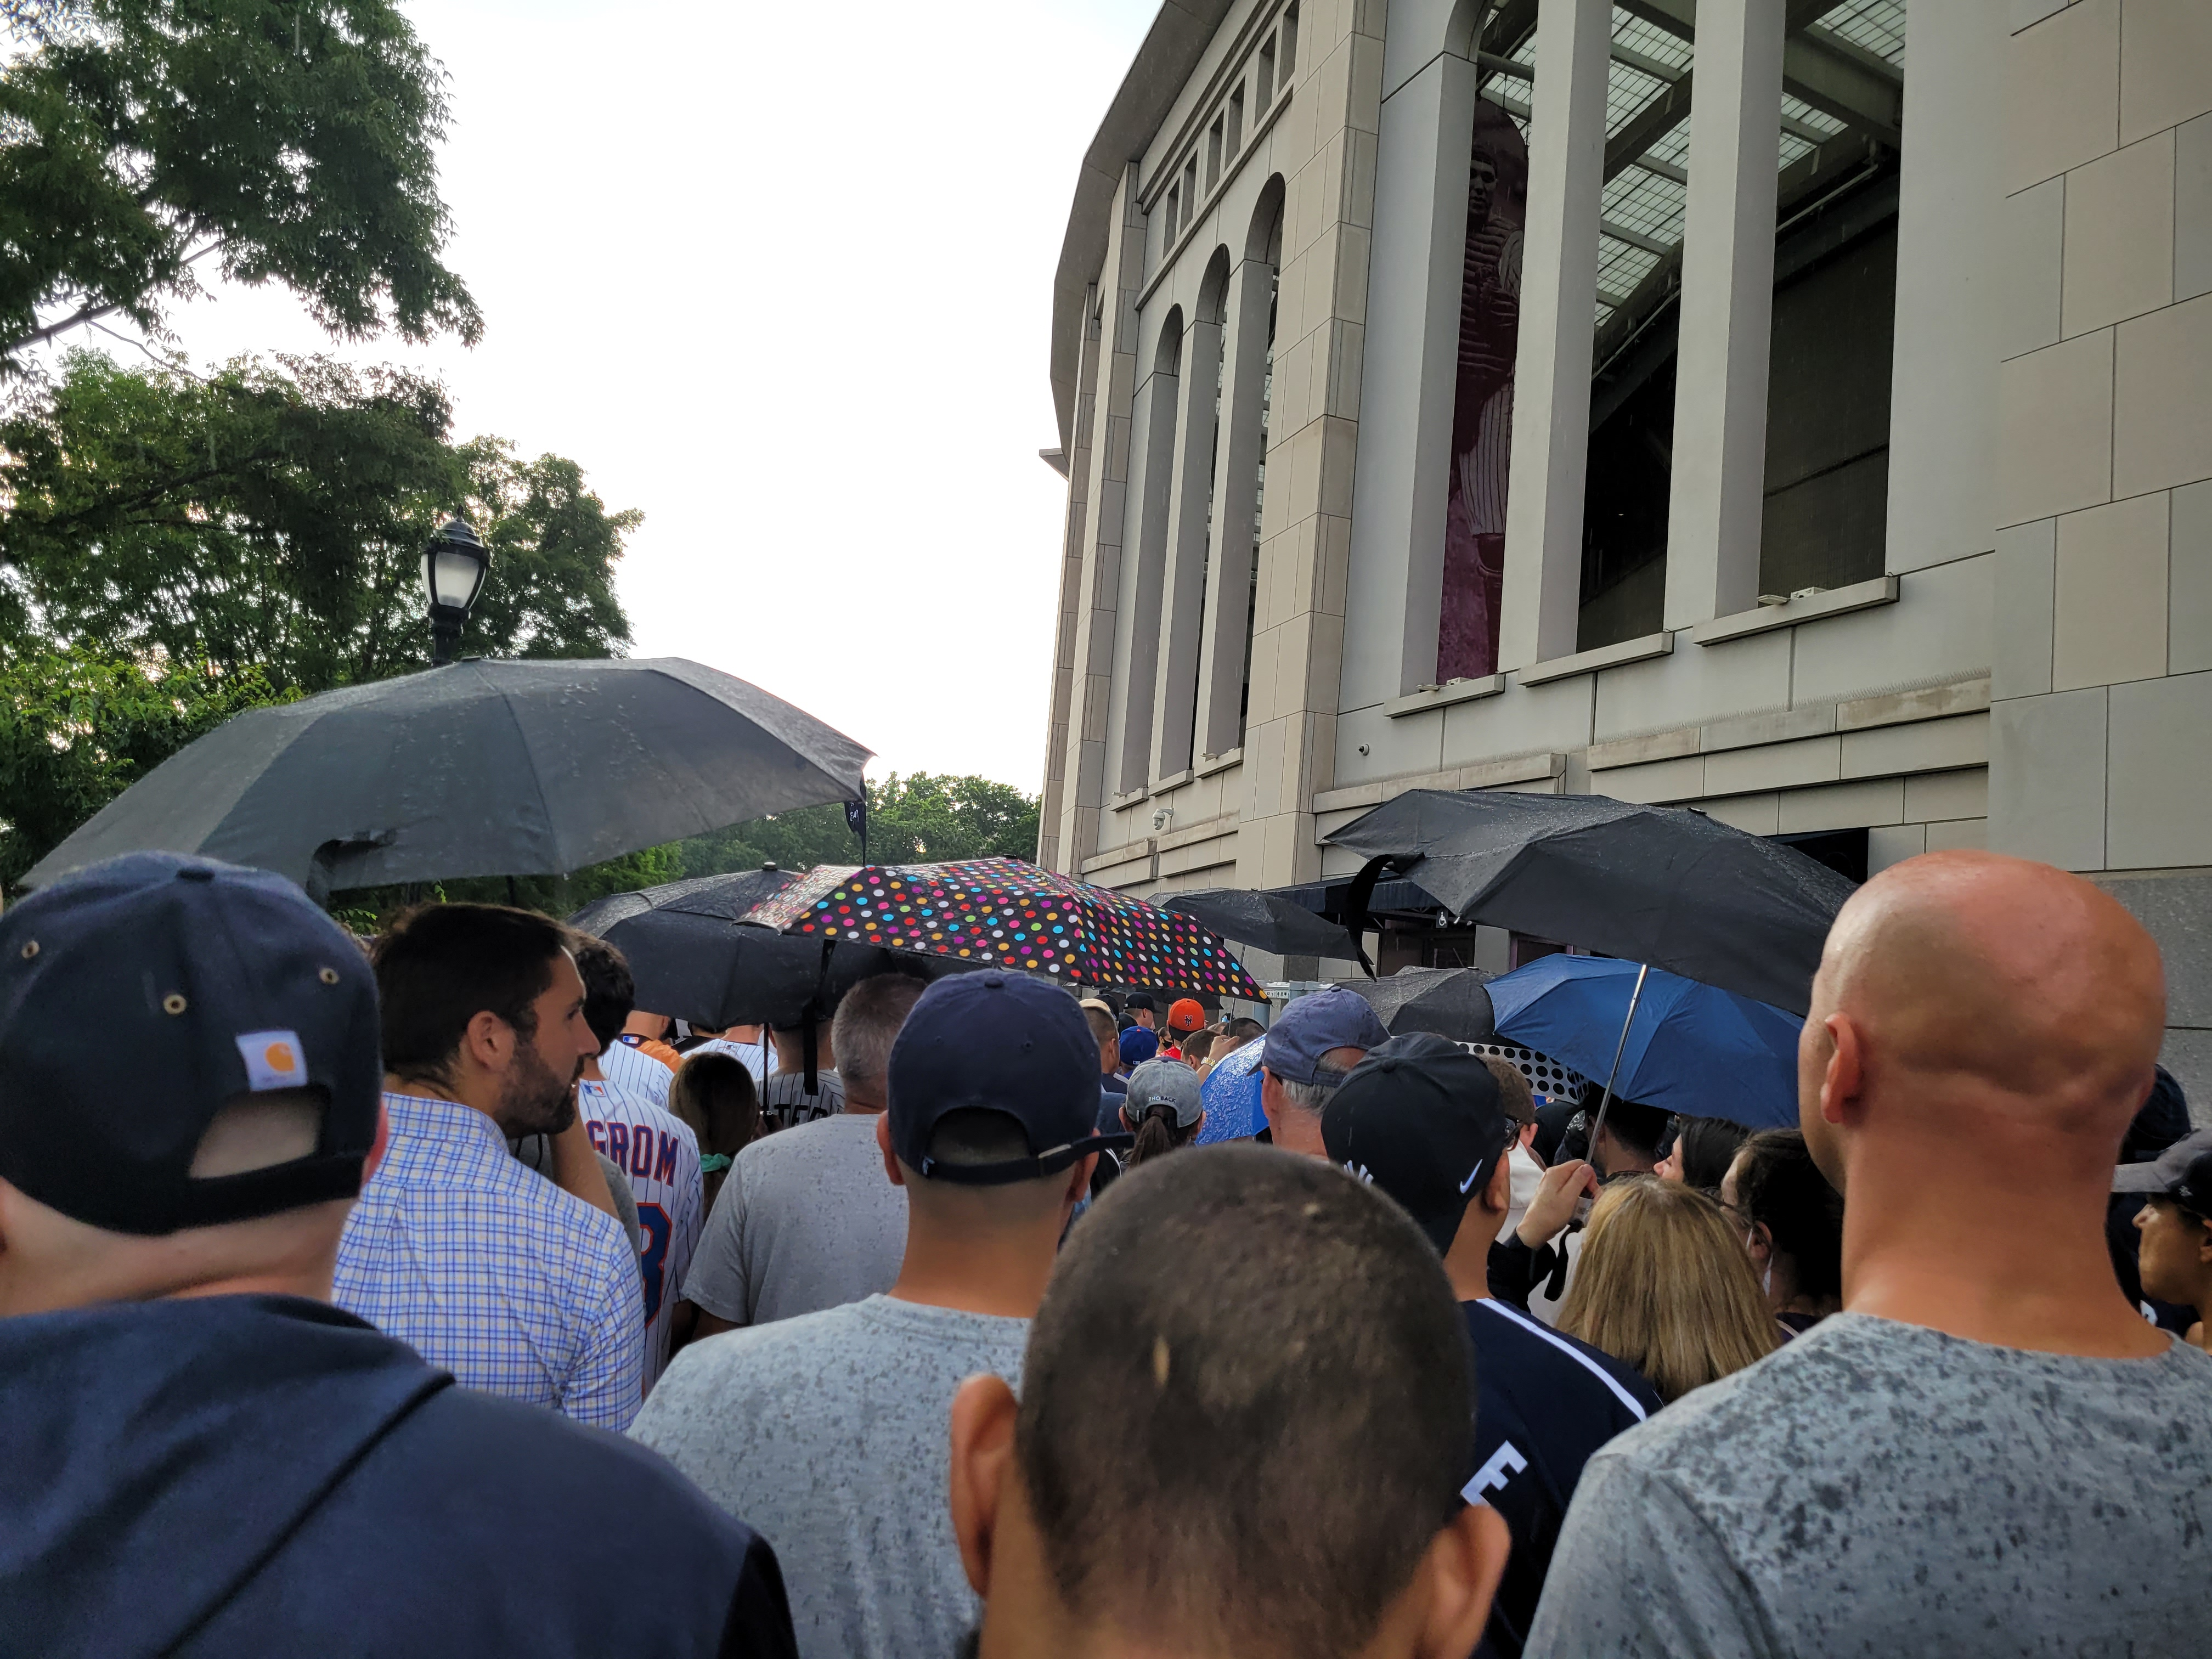 My rainy report for Game 1 of the Subway Series